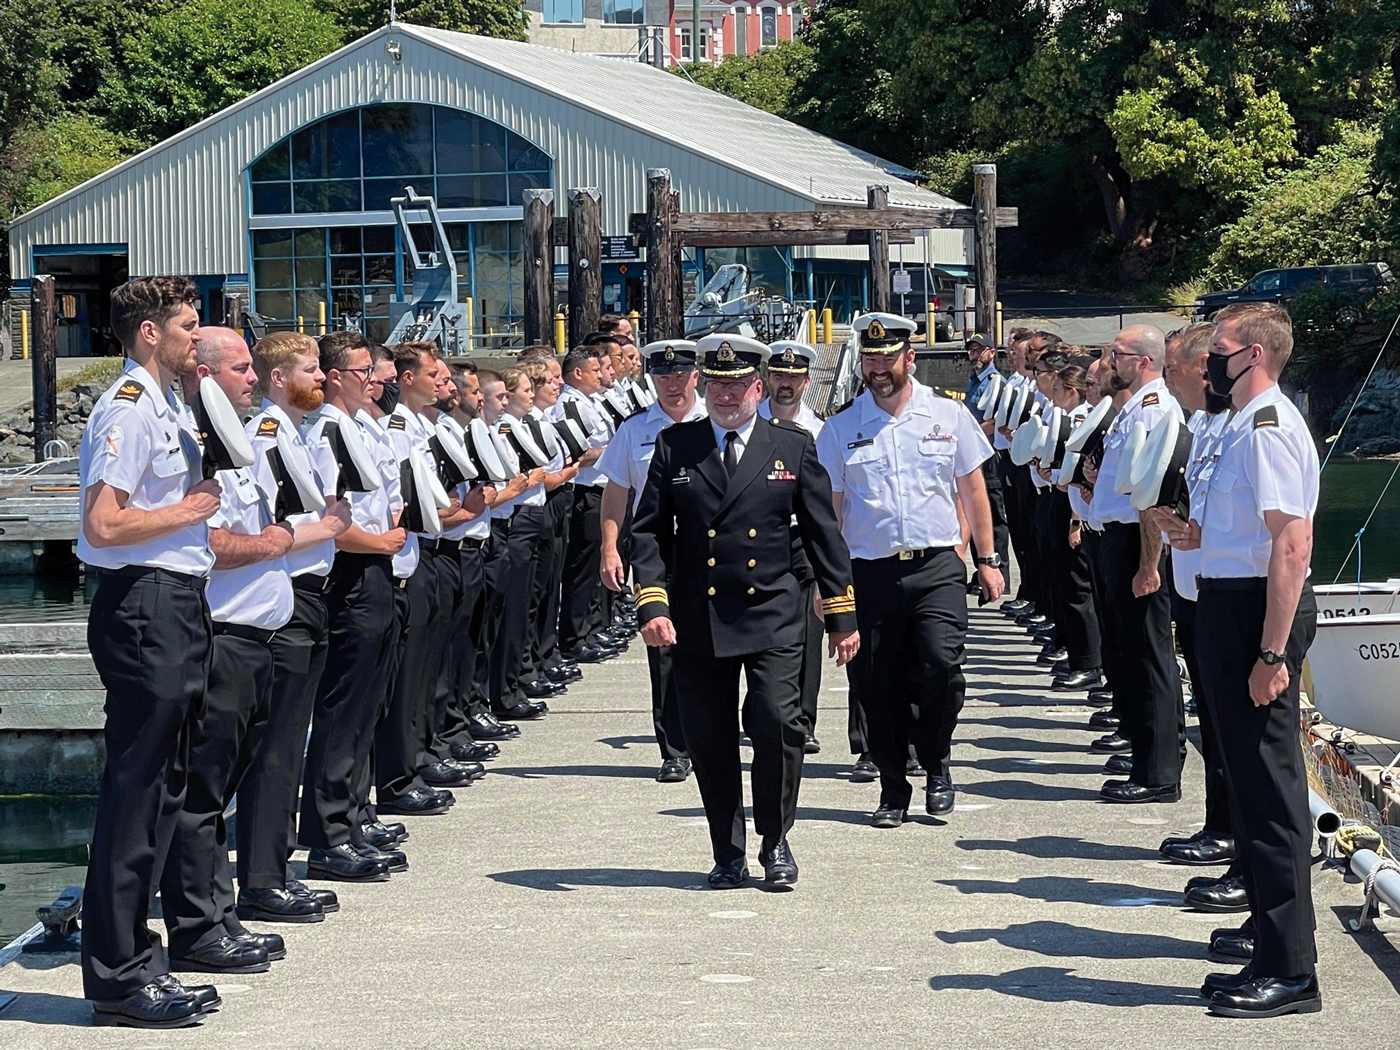 Sailors lined the floats at the Seamanship Training Centre for departing officer LCdr Mike Erwin. Following that, they removed their caps and gave three cheers as the Whaler, staffed by senior staff of Naval Fleet School Pacifc, pulled away to row him ashore.